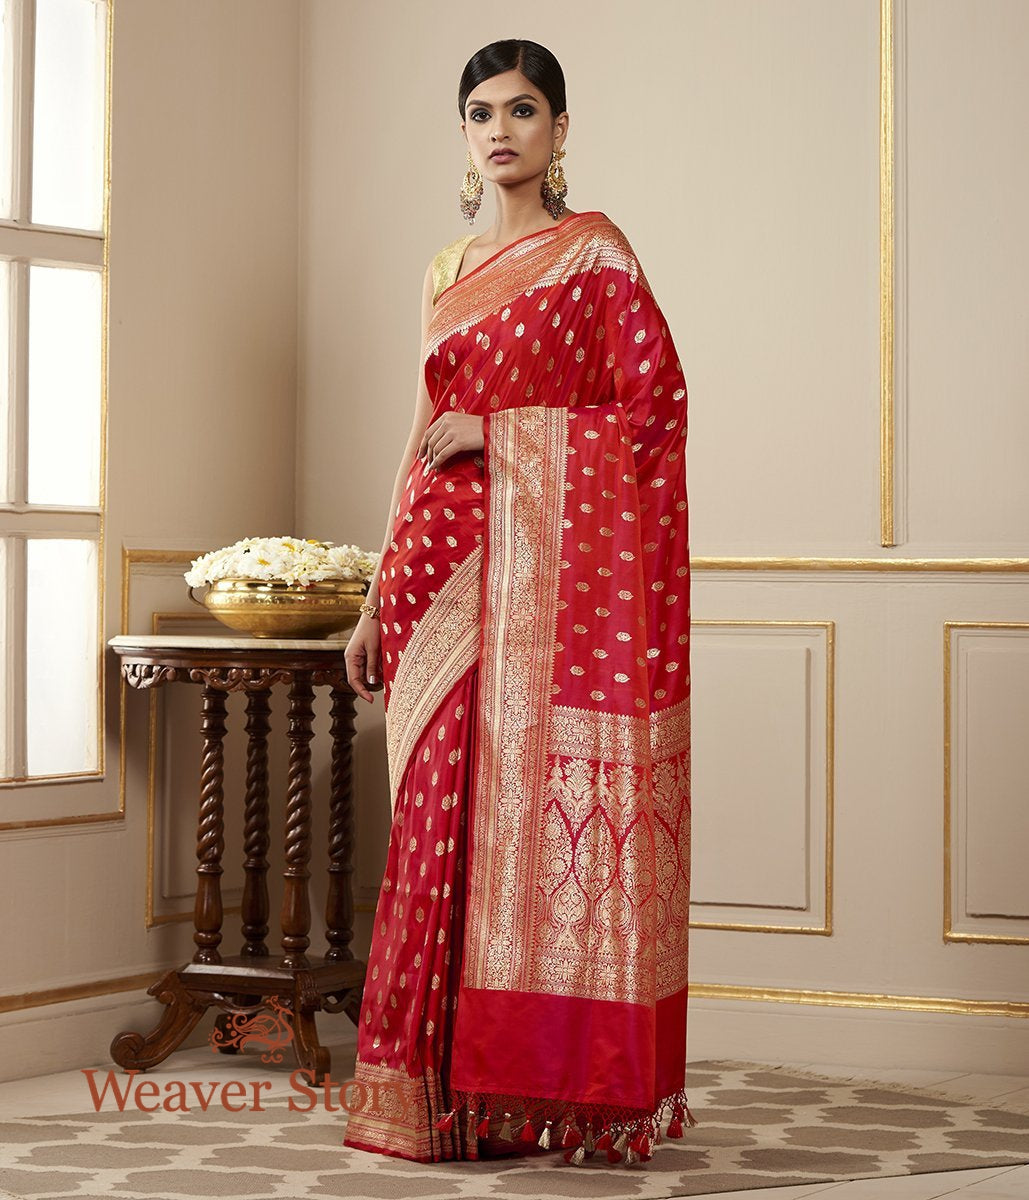 Handwoven Red Satin Silk Saree with Heavy Blouse